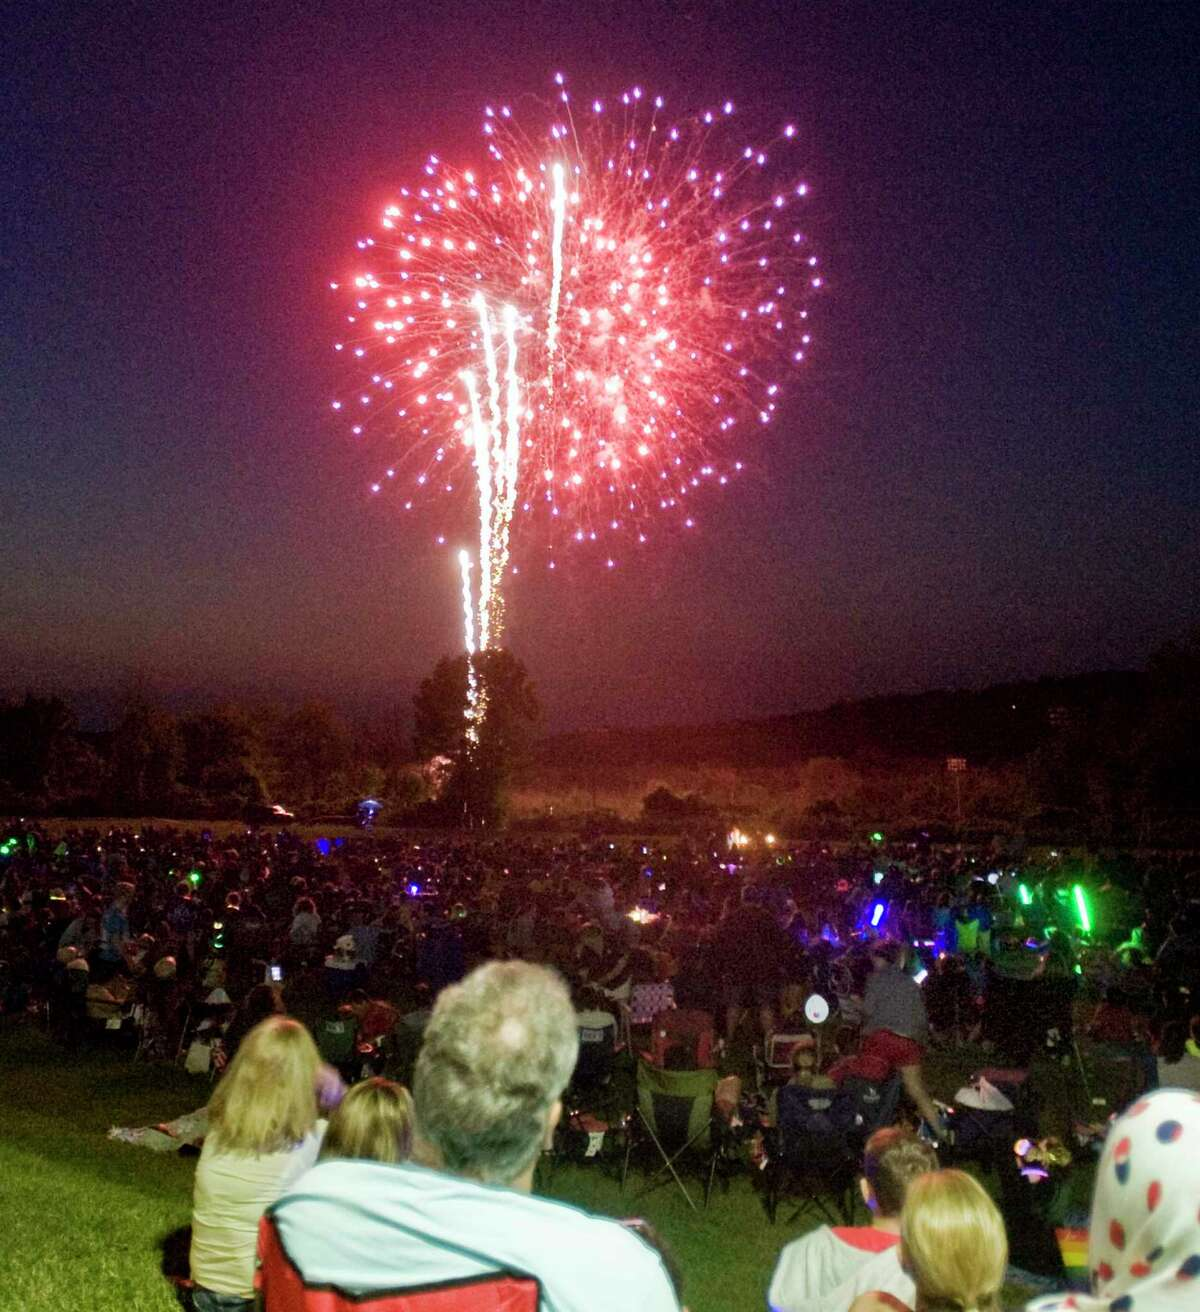 The town's annual fireworks display kicked off at Ridgefield High School's Tiger Hollow Stadium on July 5.